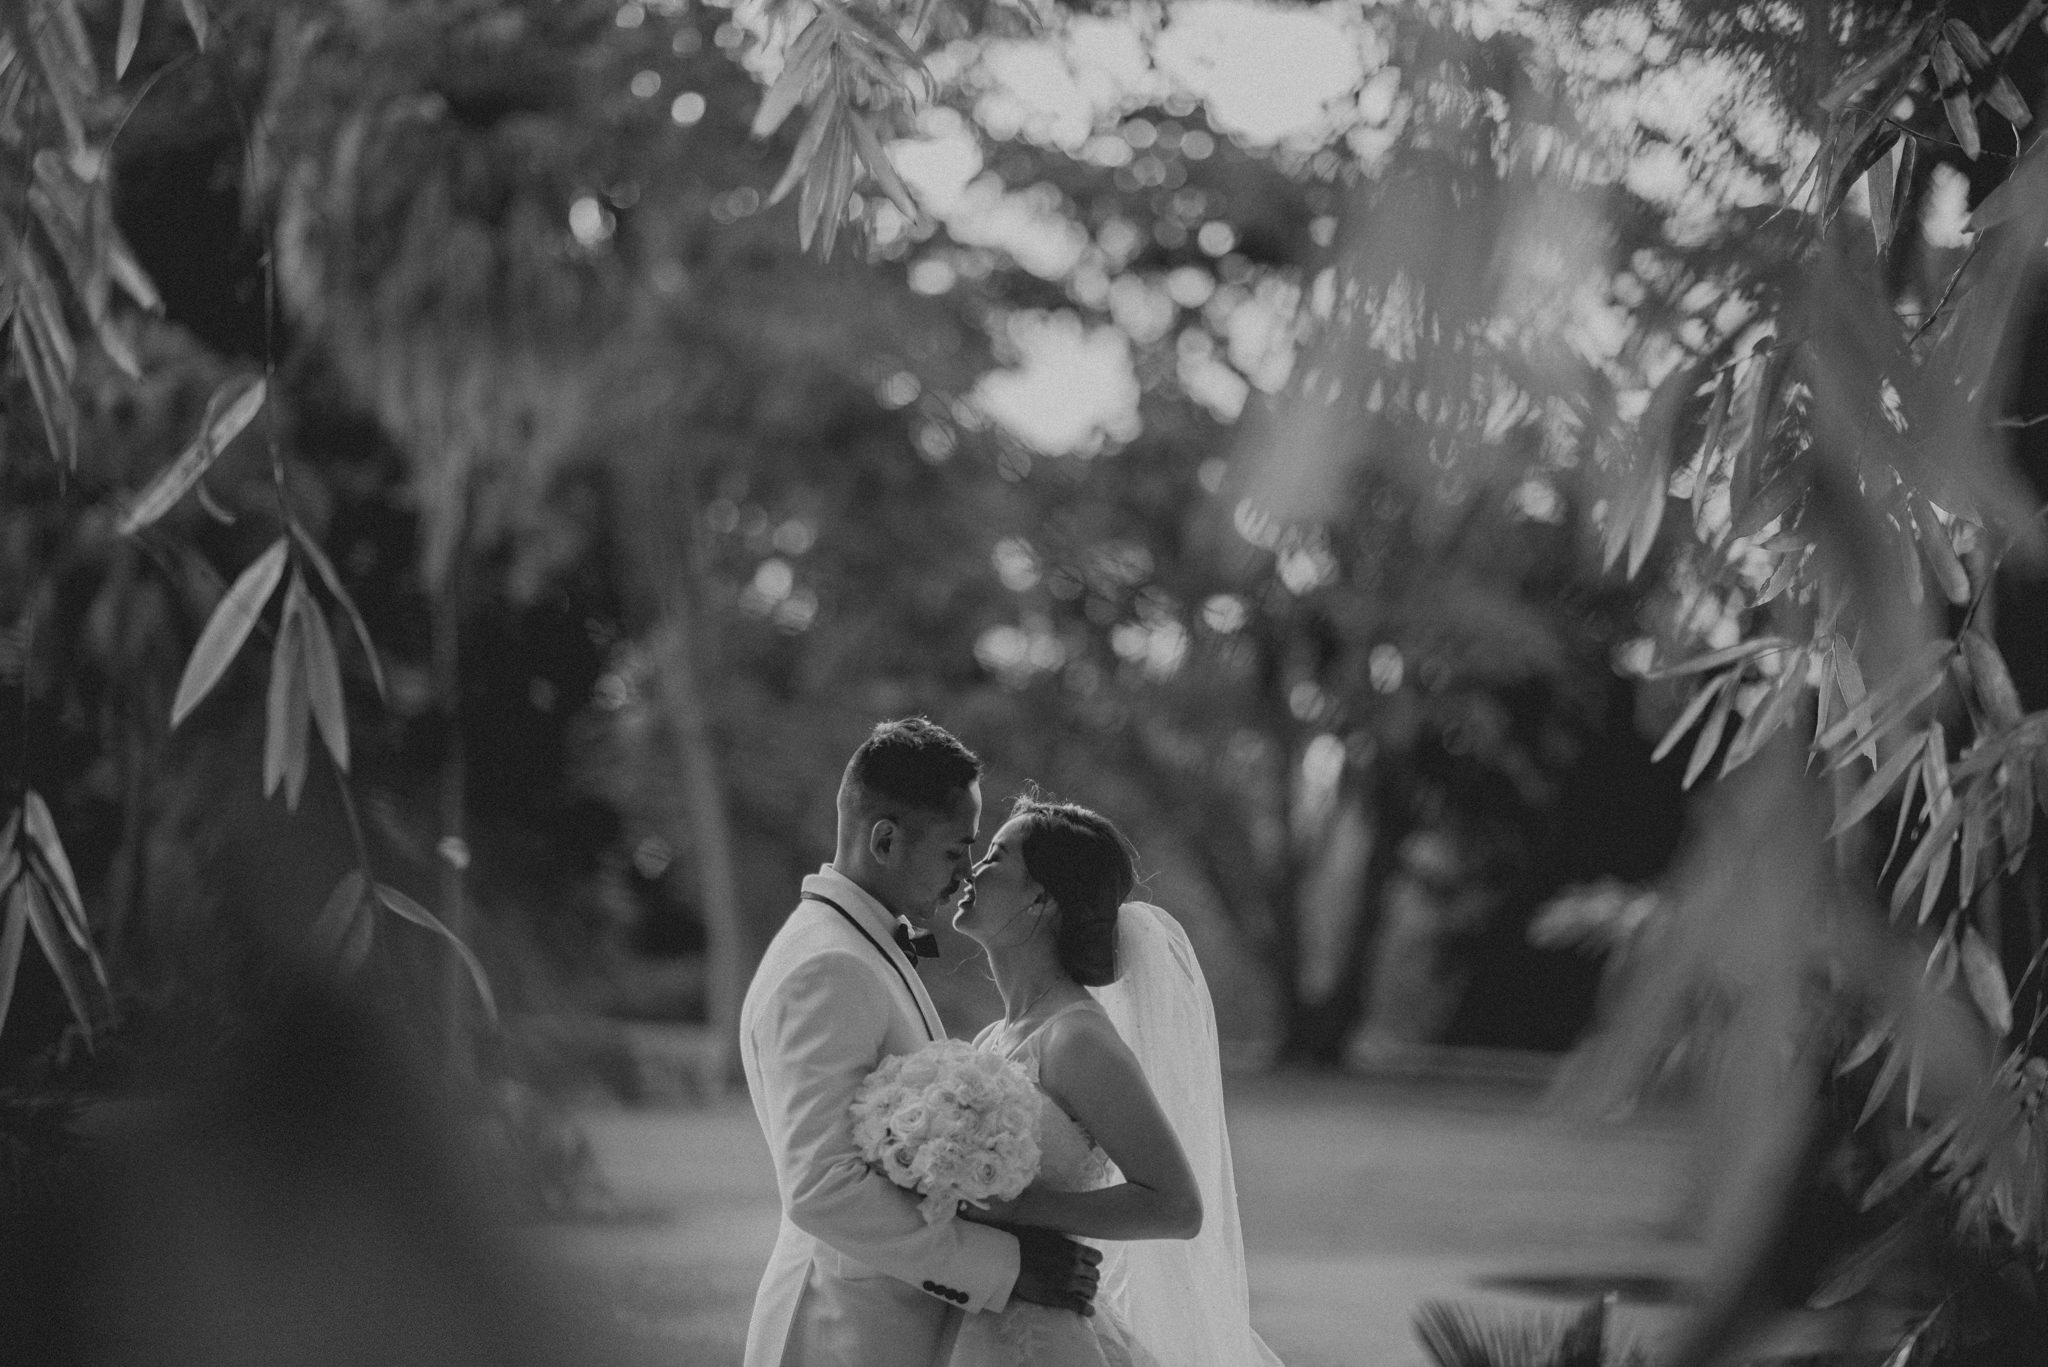 A bride and groom hug and kiss emotionally underneath bamboo trees